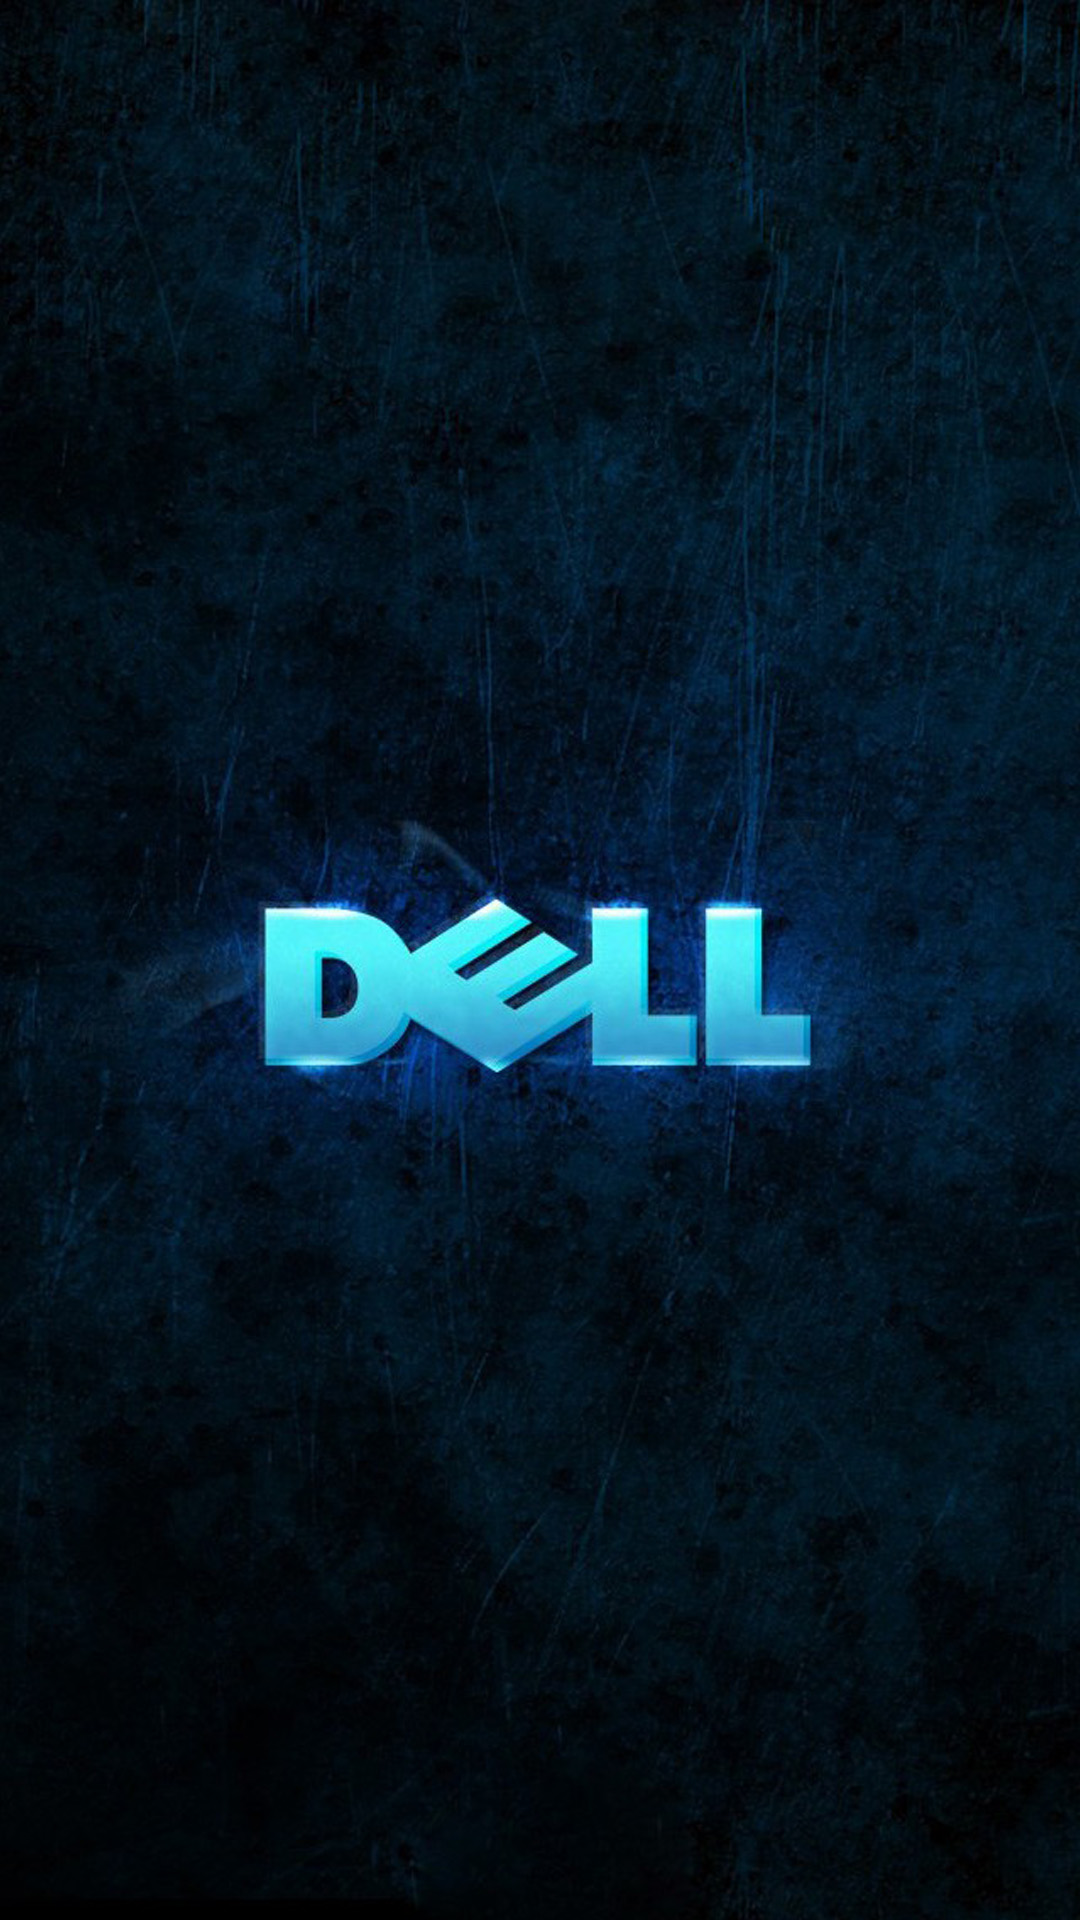 3d Wallpaper Hd For Pc Download Dell Logo Best Htc One Wallpapers Free And Easy To Download